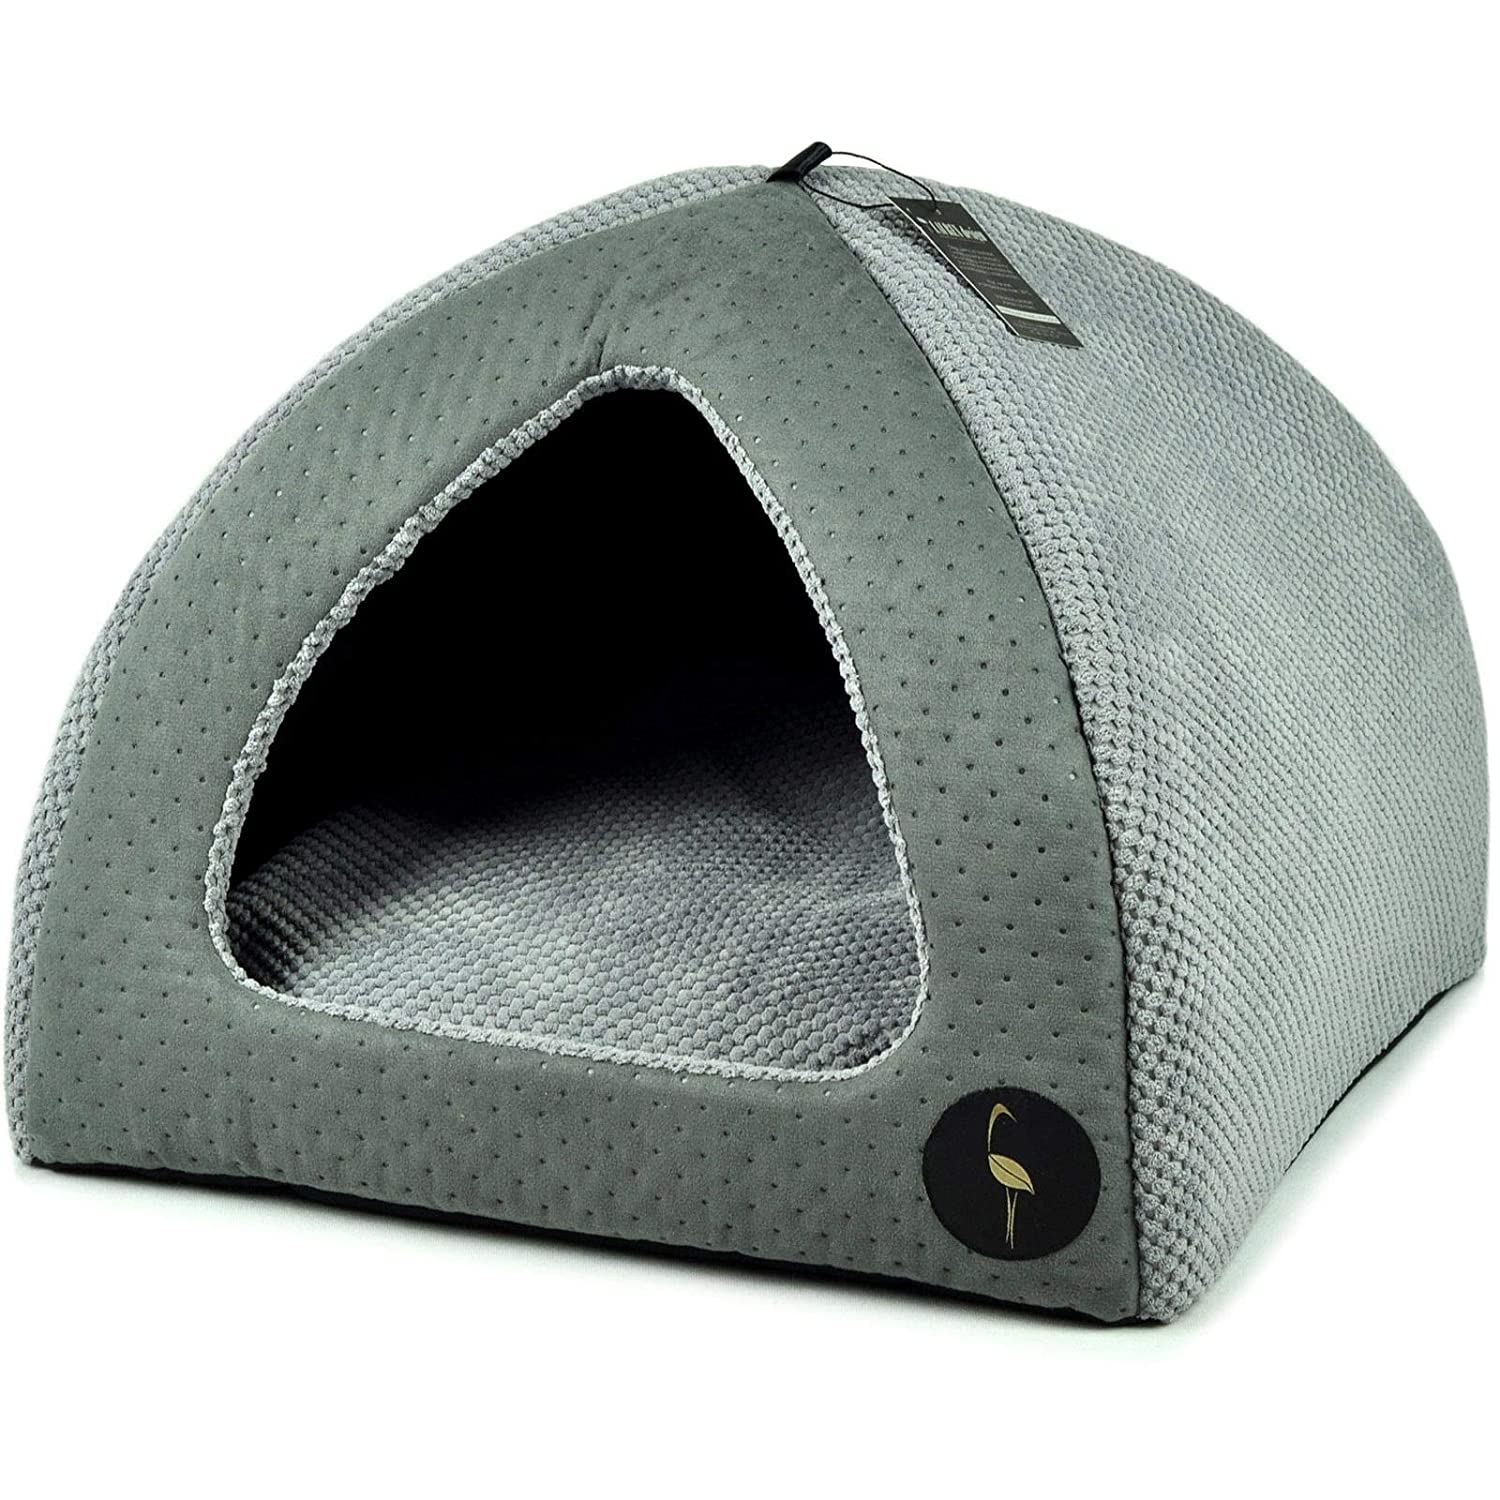 Grey & Grey 50 x 50cm CatCentre Grey & Grey 50 x 50cm UK Pet Cat Puppy Dog Igloo Bed House Pyramid Sofa Cave 2 Sizes